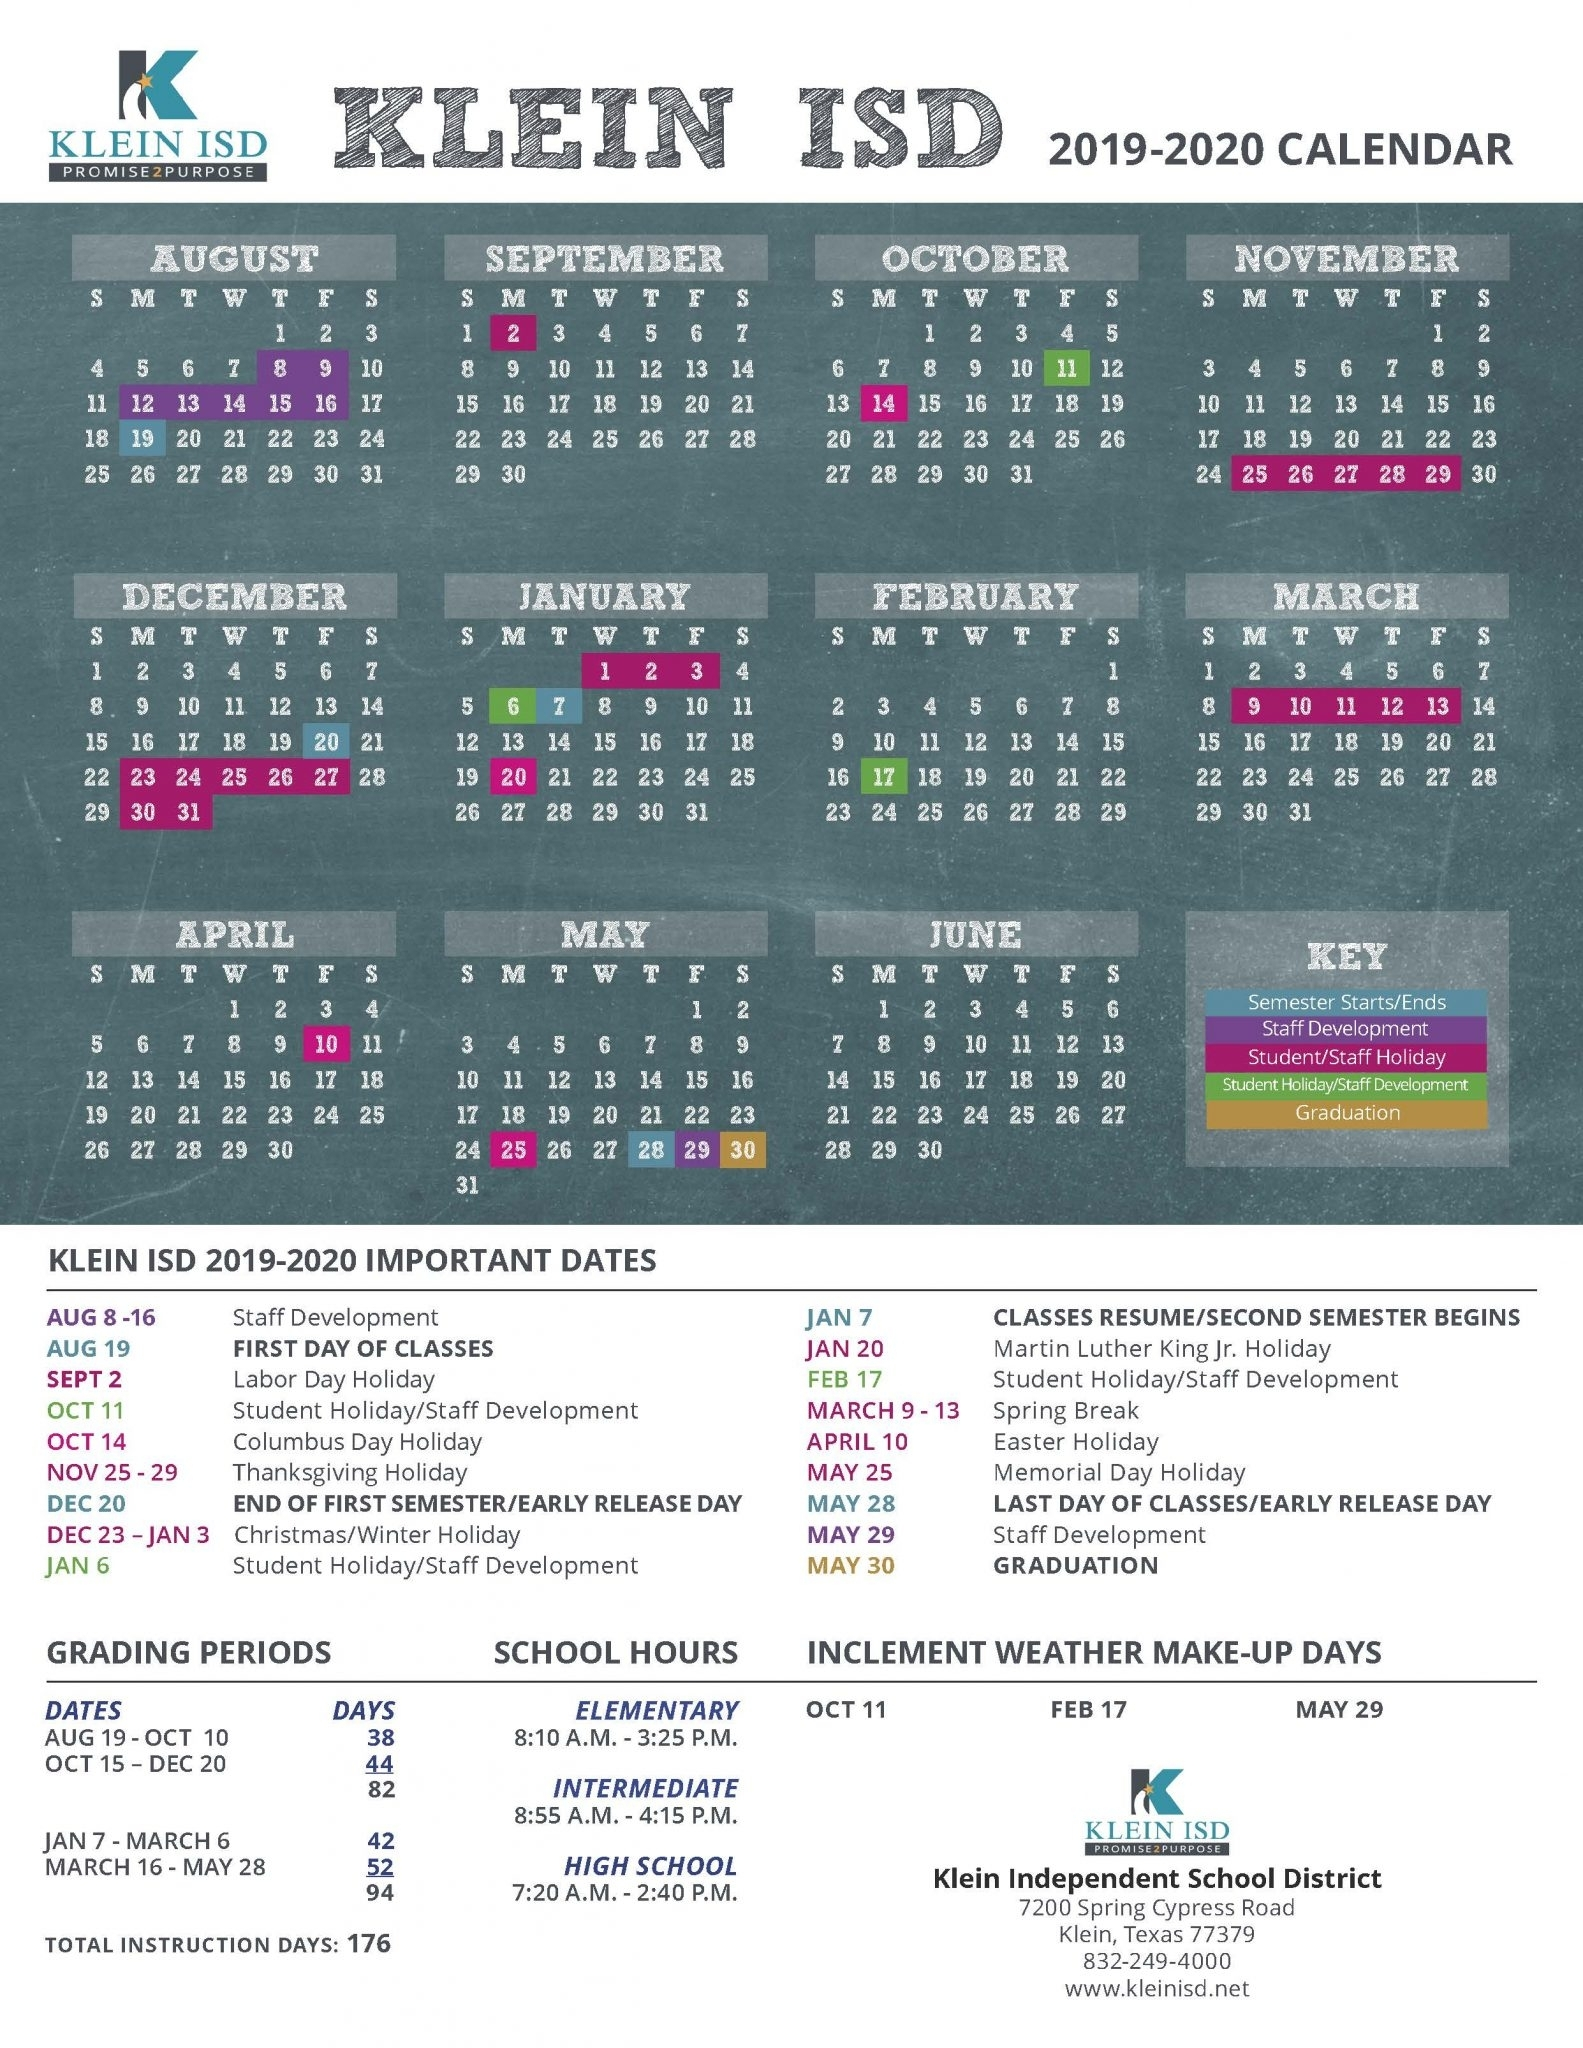 Klein Isd Announces Calendar For 2019-2020 School Year